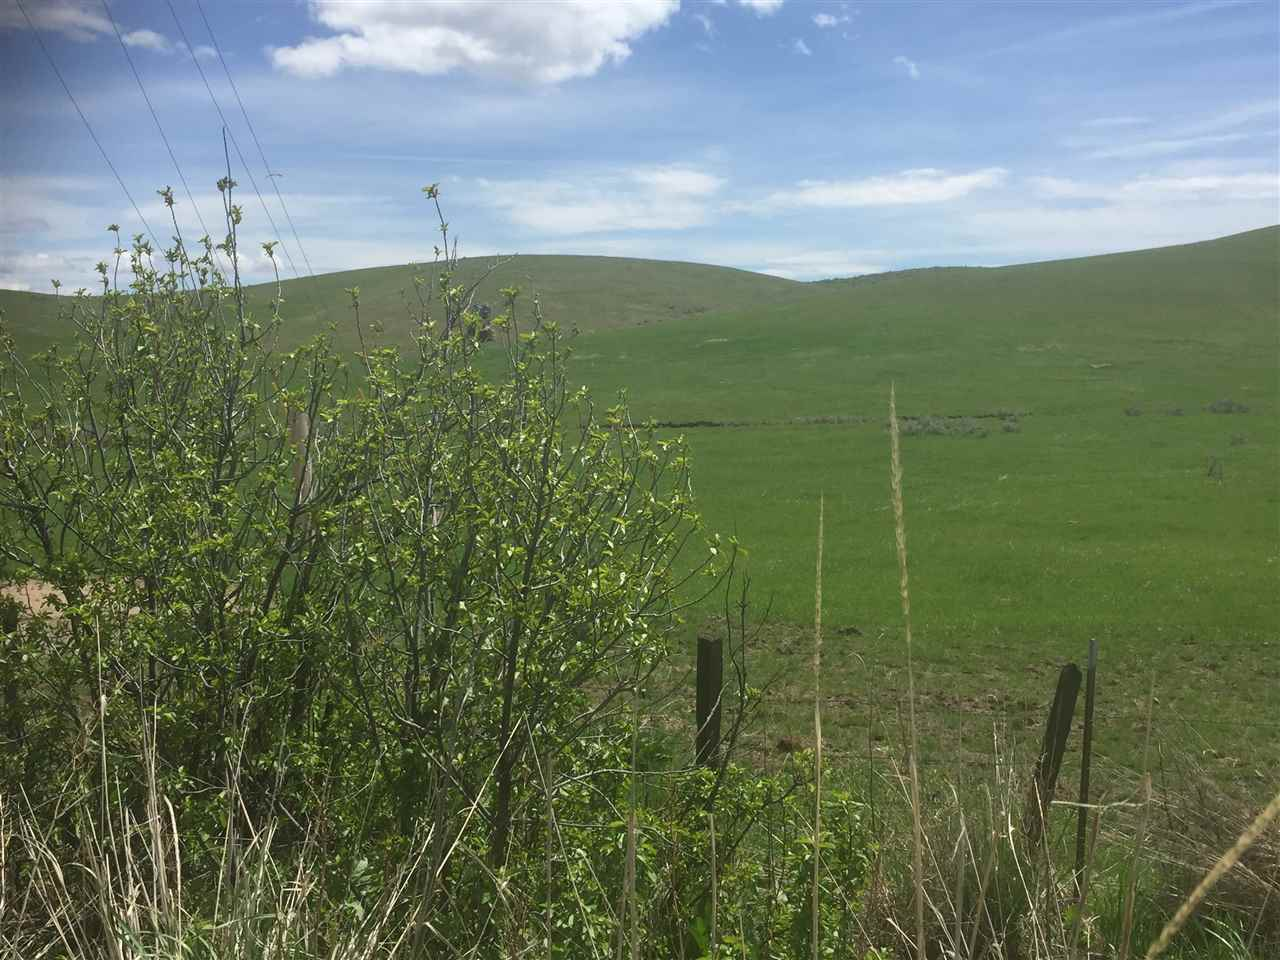 TBD THOUSAND SPRINGS RD,Weiser,Idaho 83672,Land,TBD THOUSAND SPRINGS RD,98685691